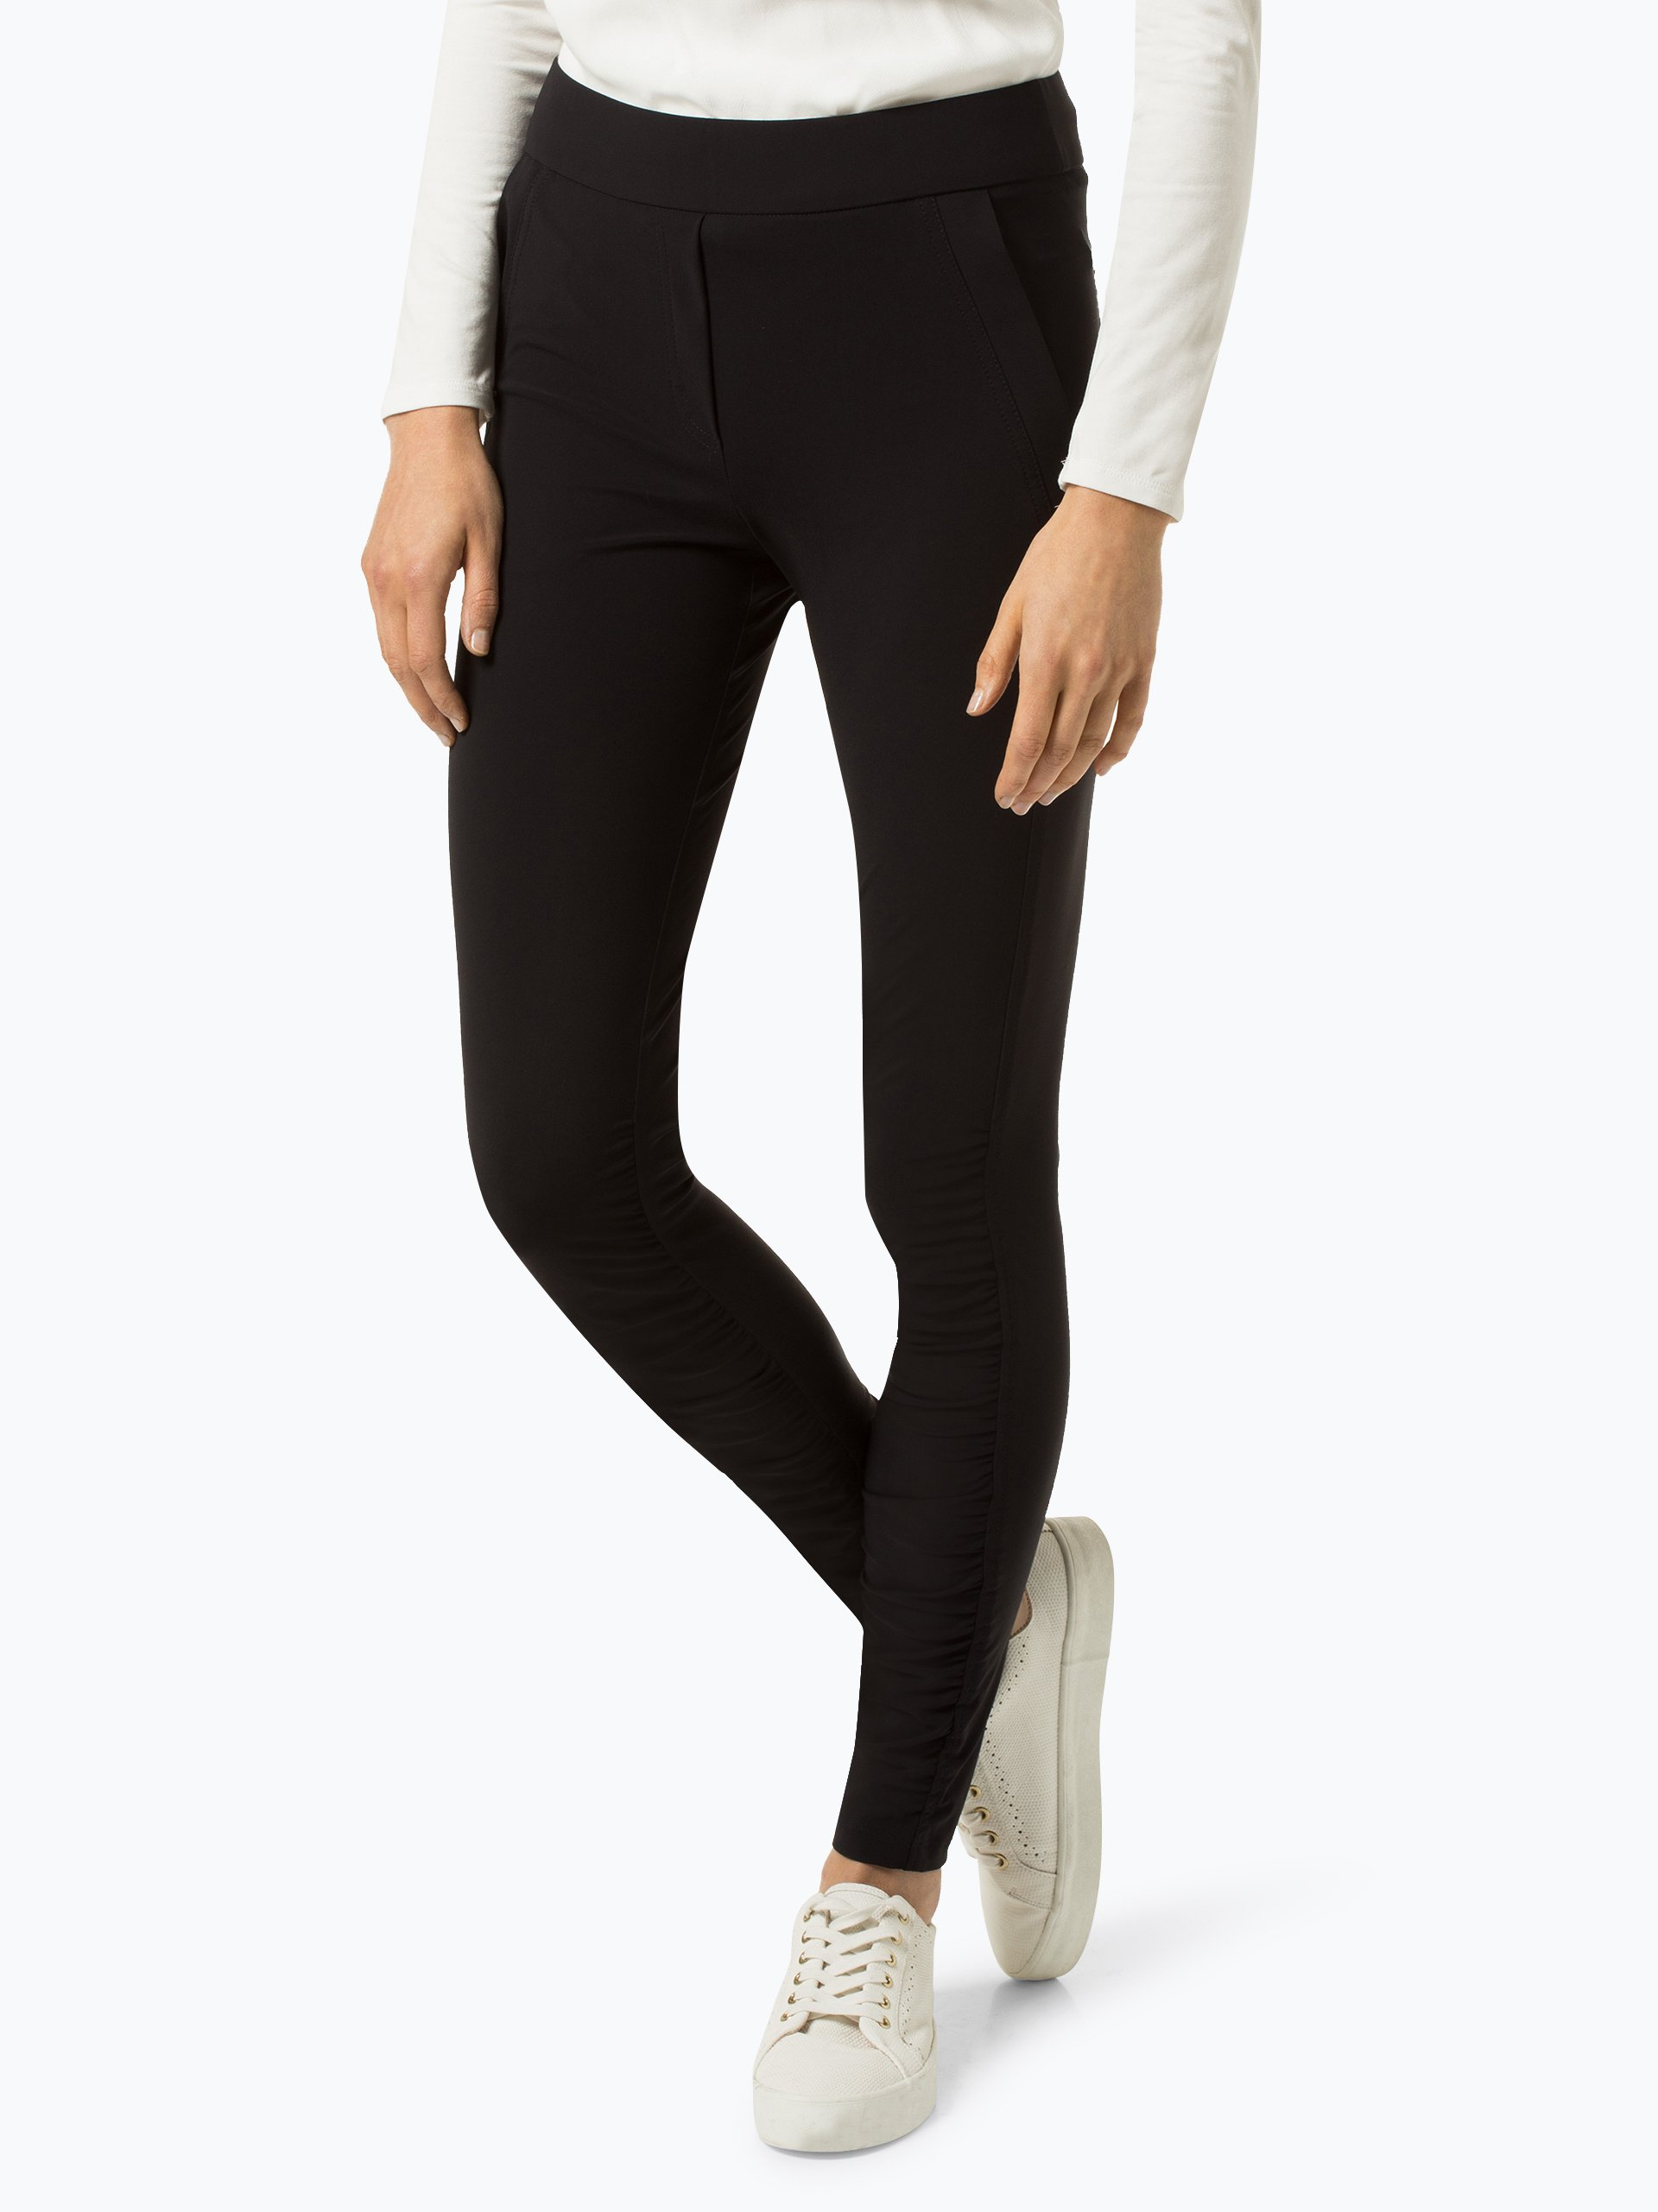 Marc Cain Collections Damen Sportswear Hose